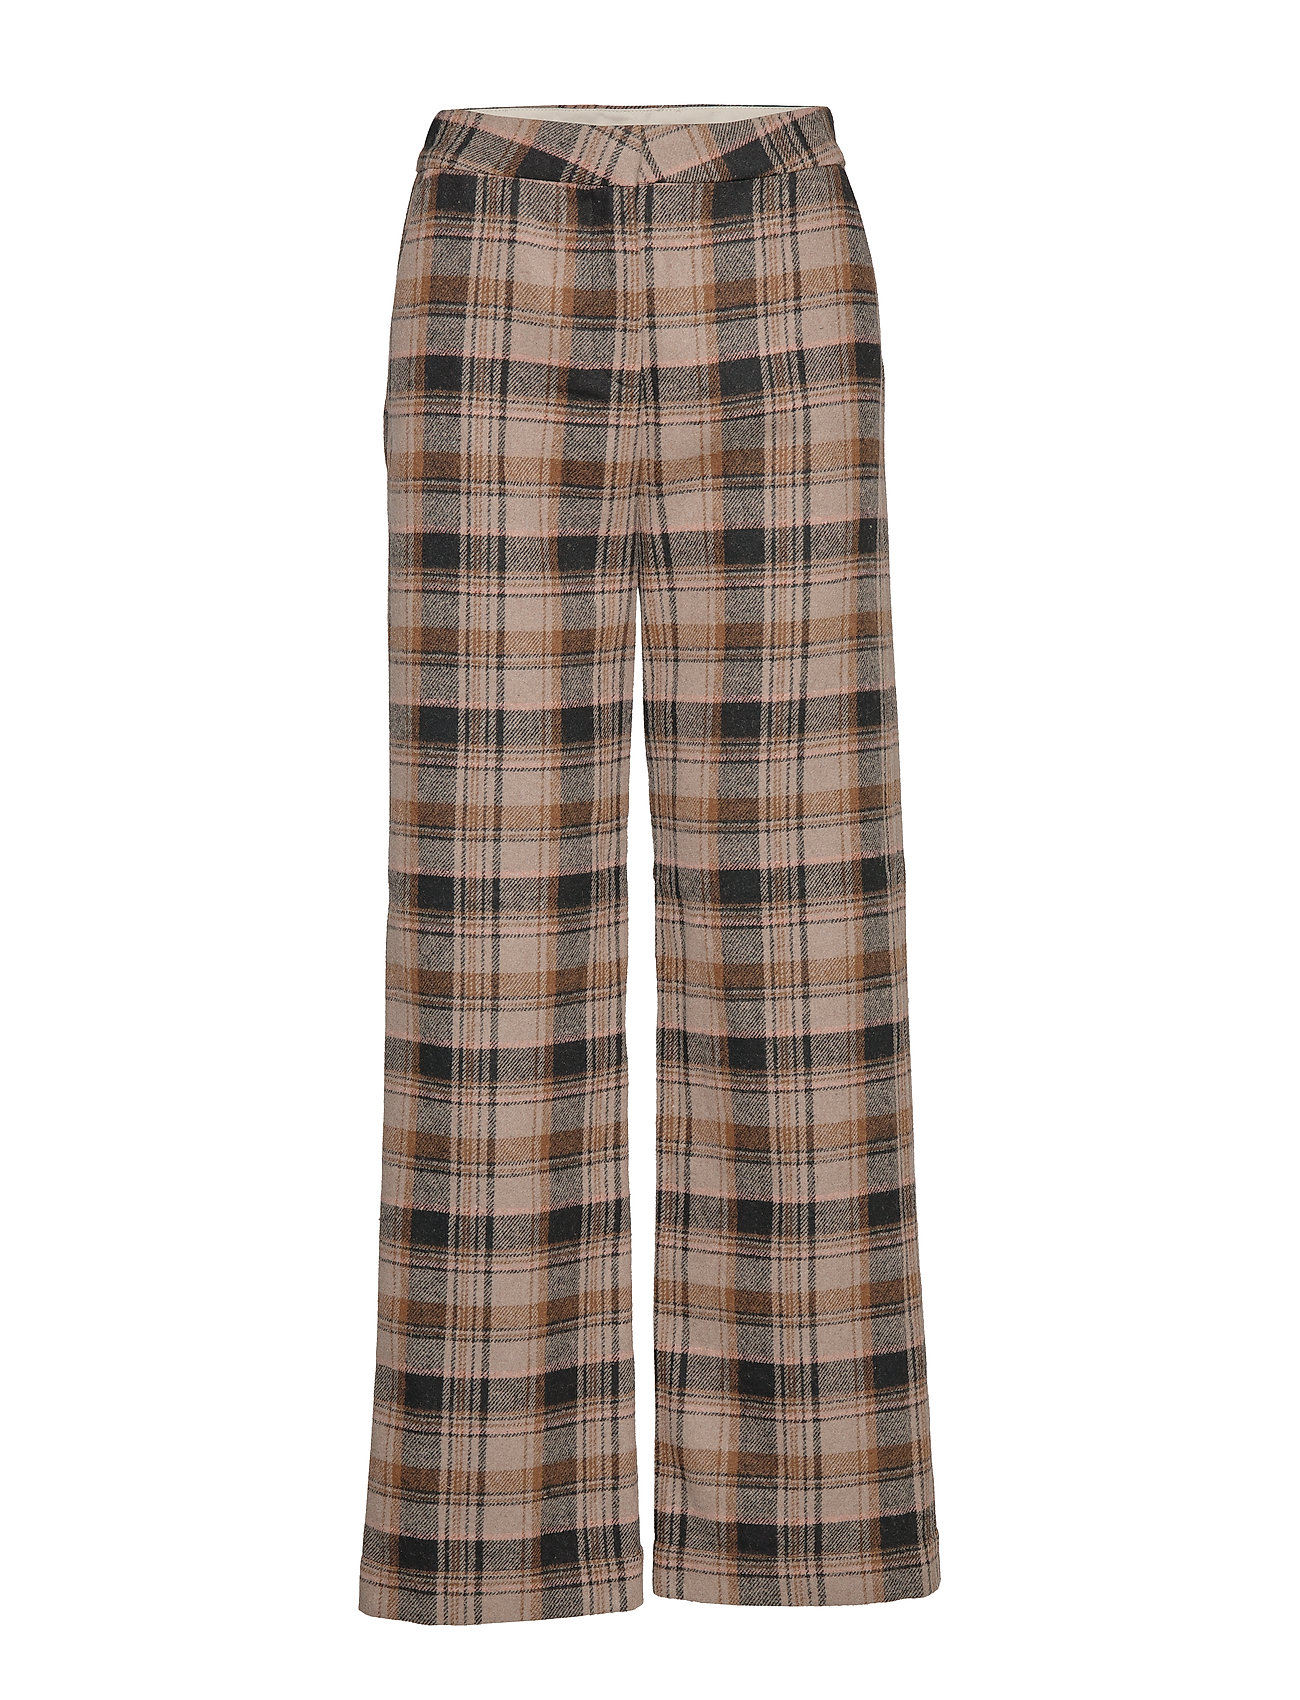 Soaked in Luxury SL Indie Check Pants - EUCALYPTUS CHECK PATTERN